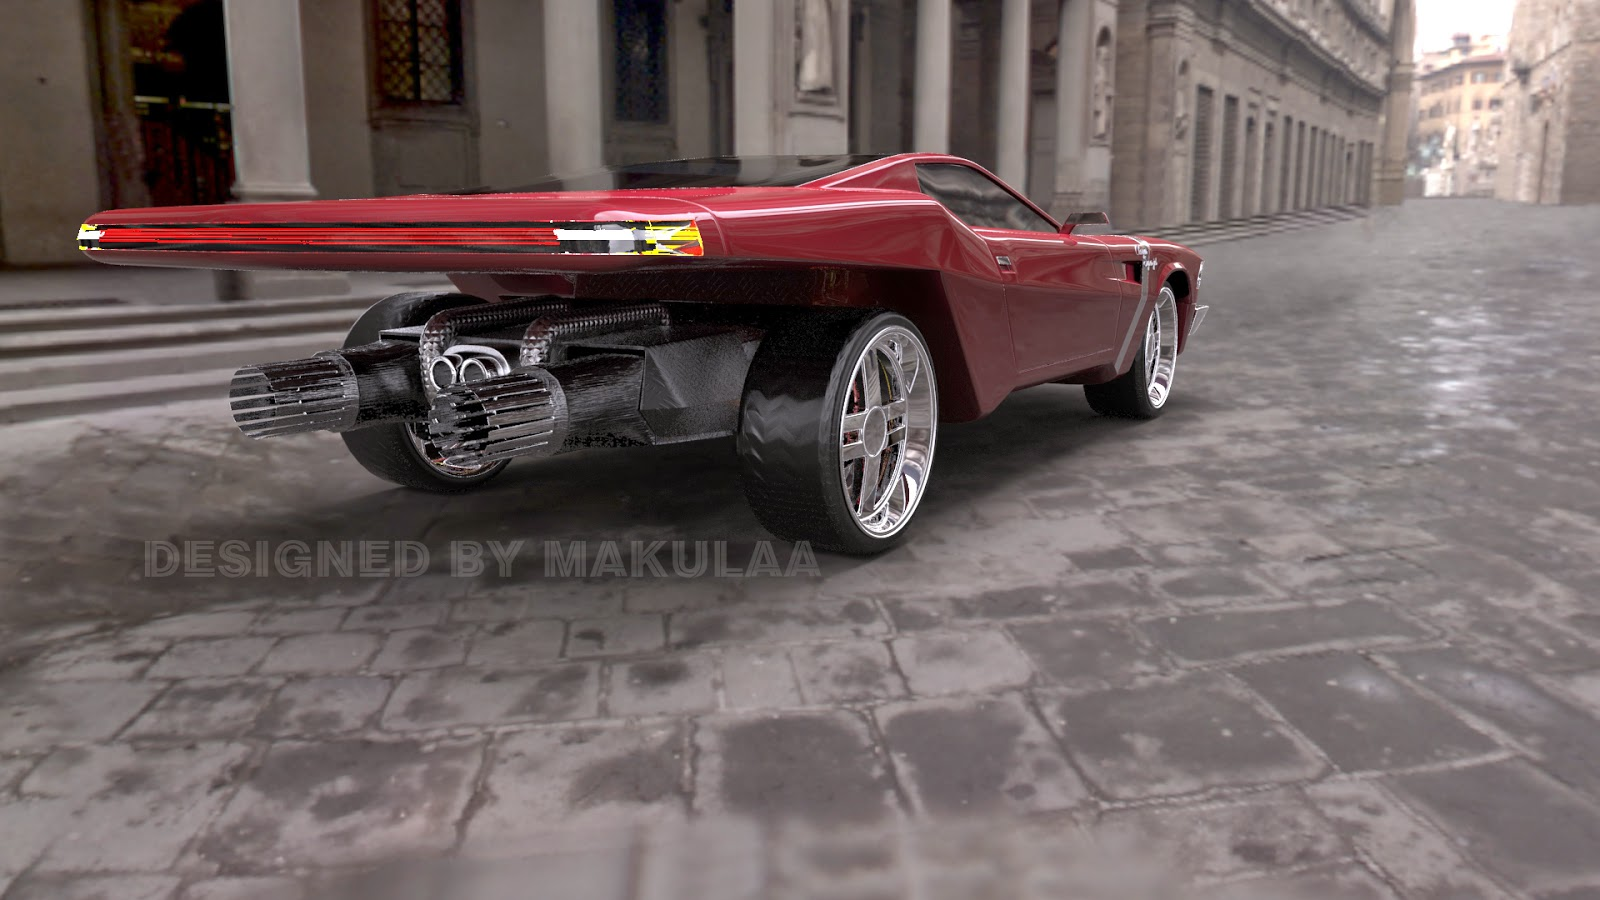 Car Design Creator By Makulaa Dodge Charger 2017 New